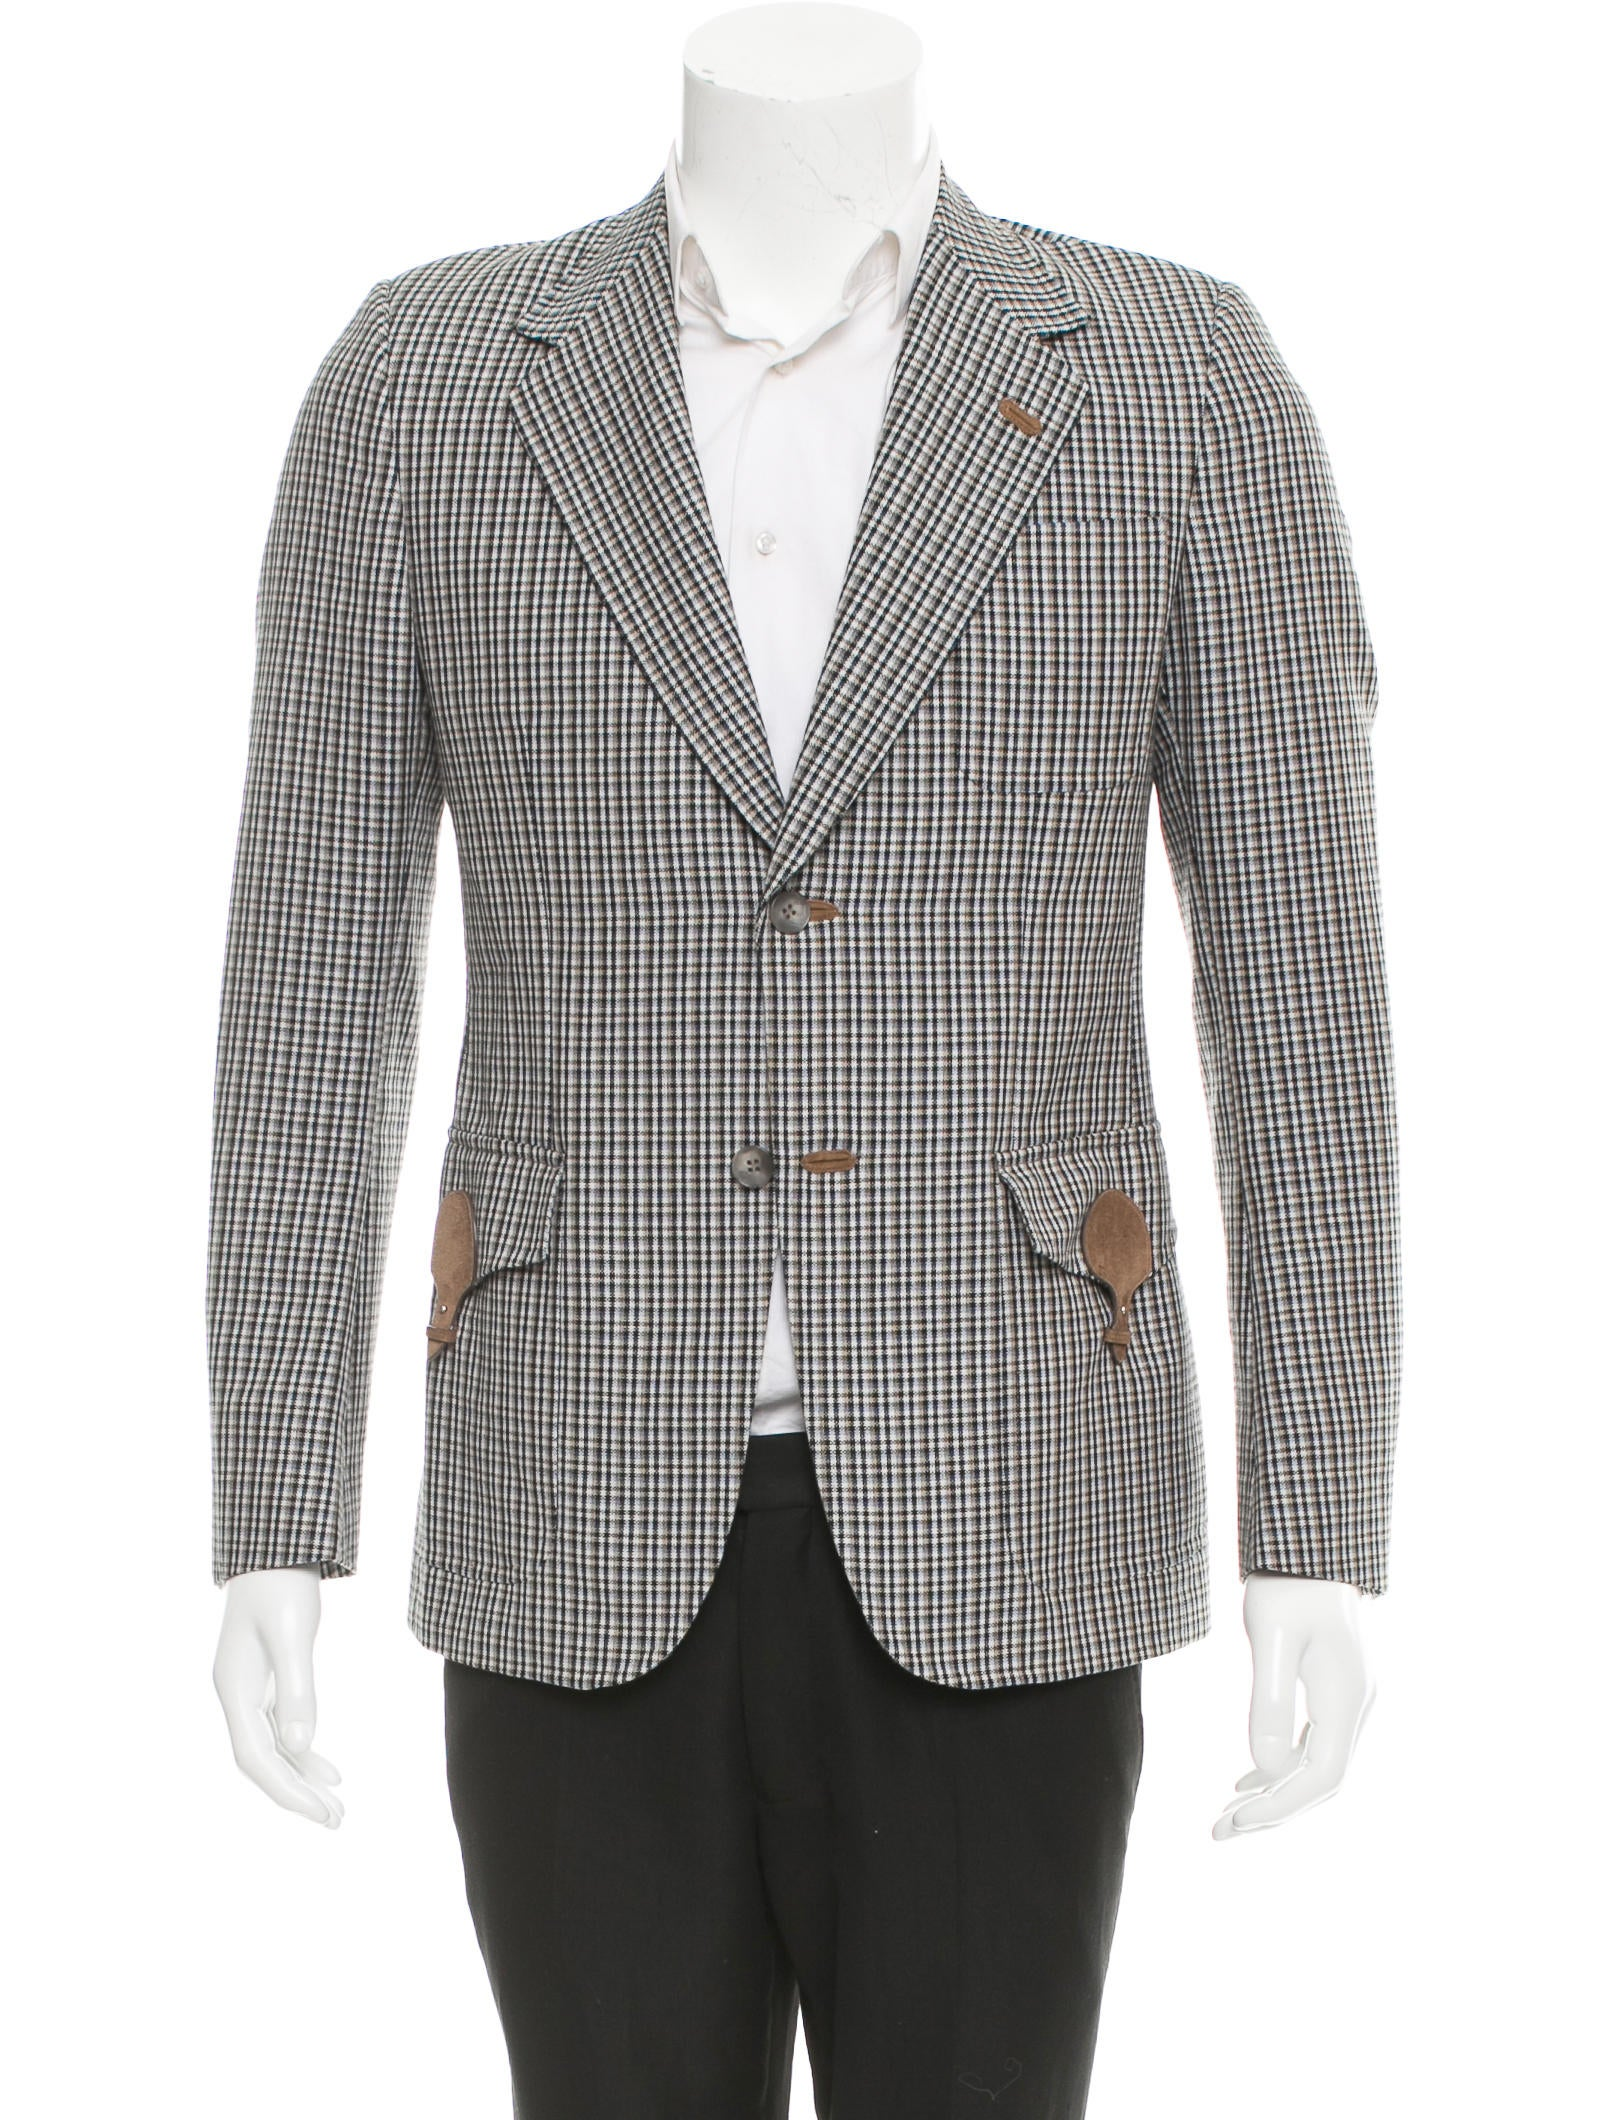 Gucci Suede-Trimmed Sport Coat - Clothing - GUC180179 | The RealReal